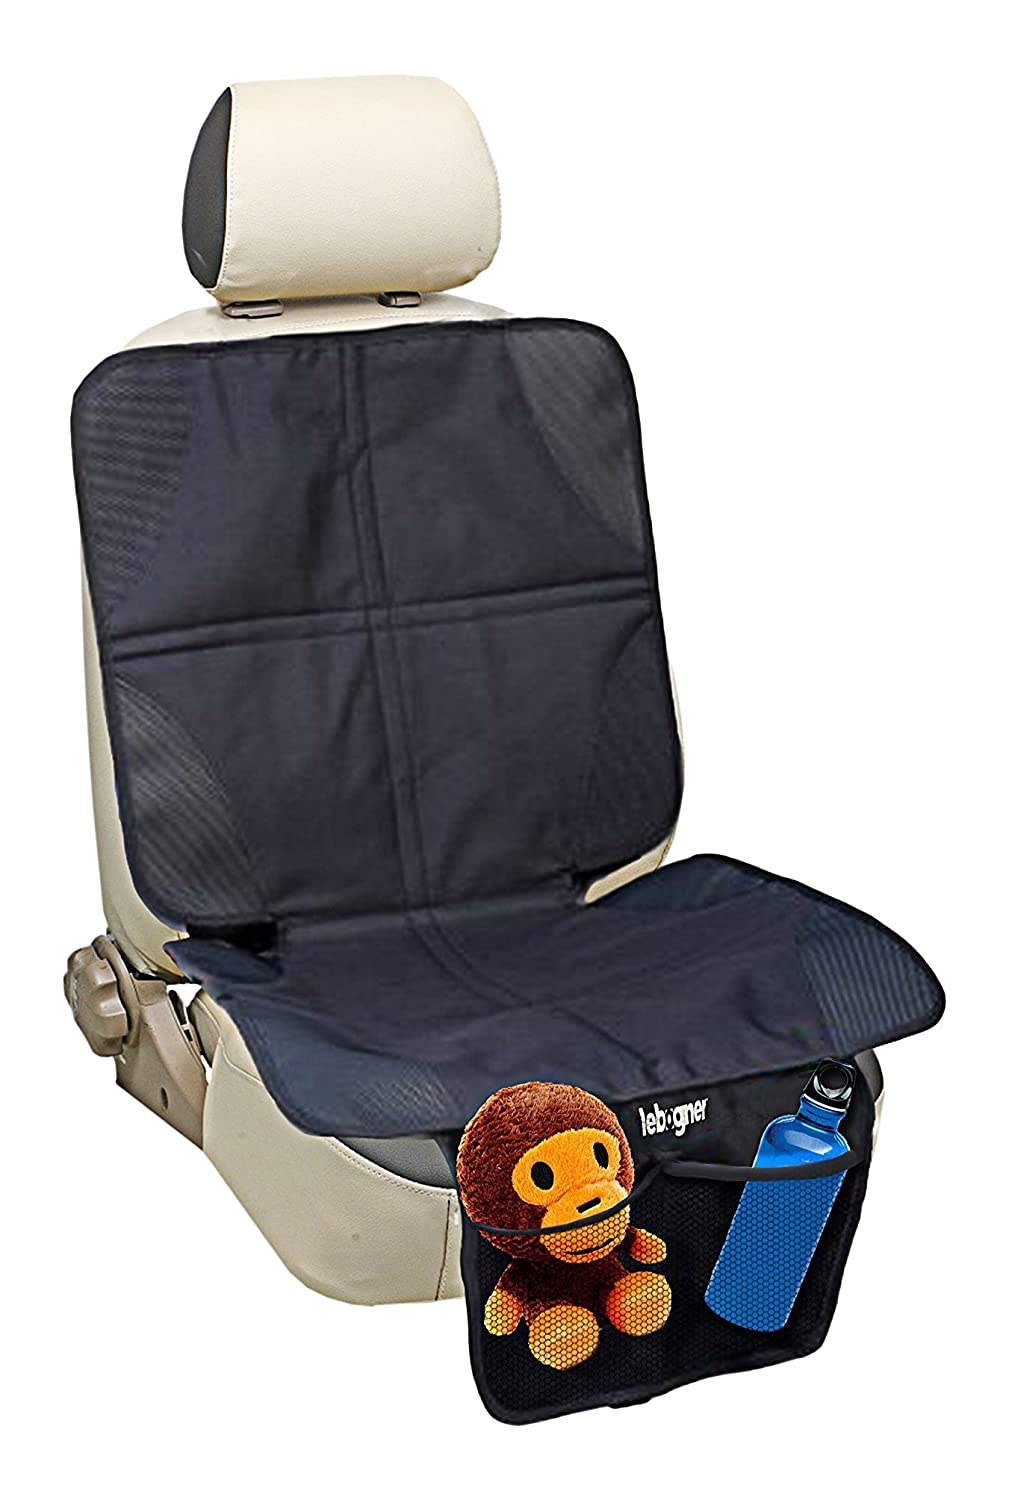 Lebogner LOR-A-1007 Seat Protector